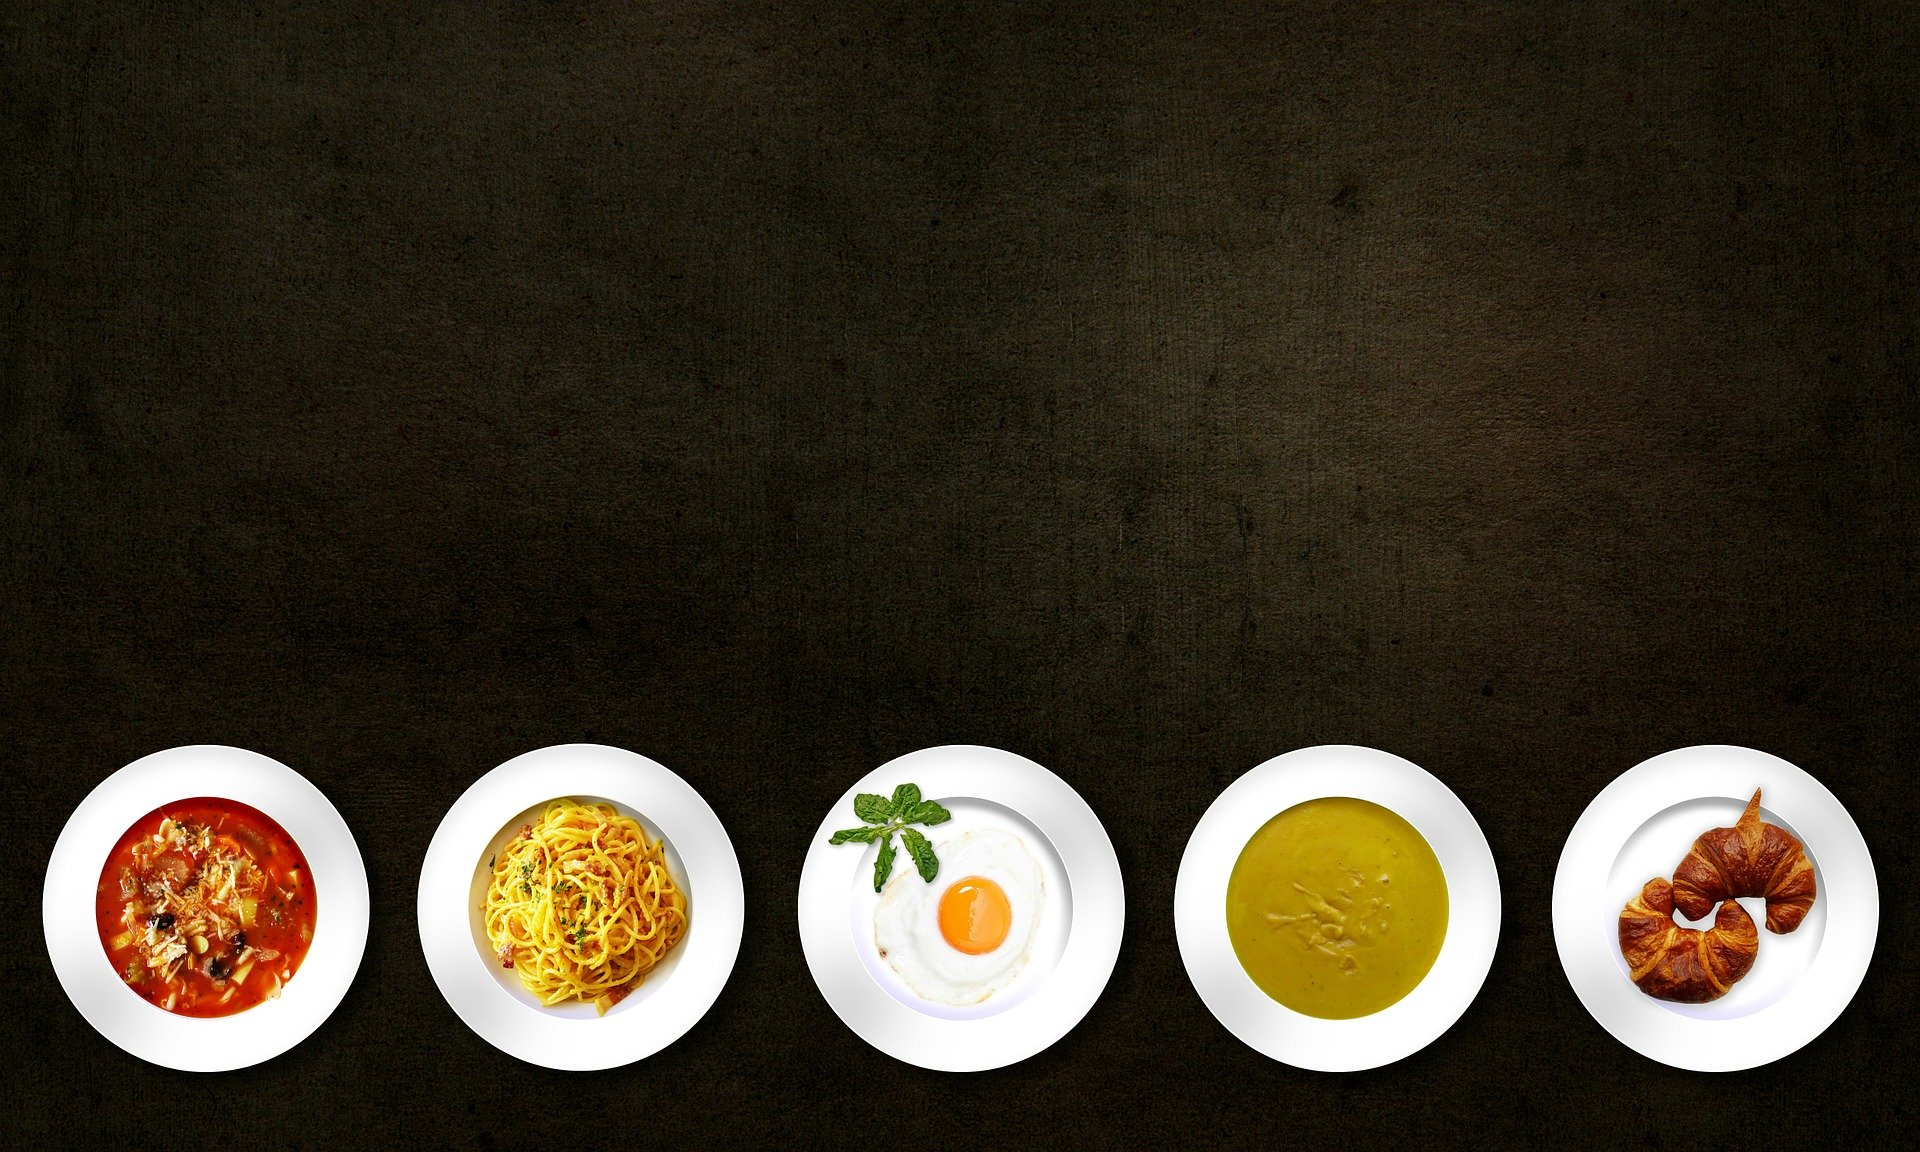 Five dishes to choose